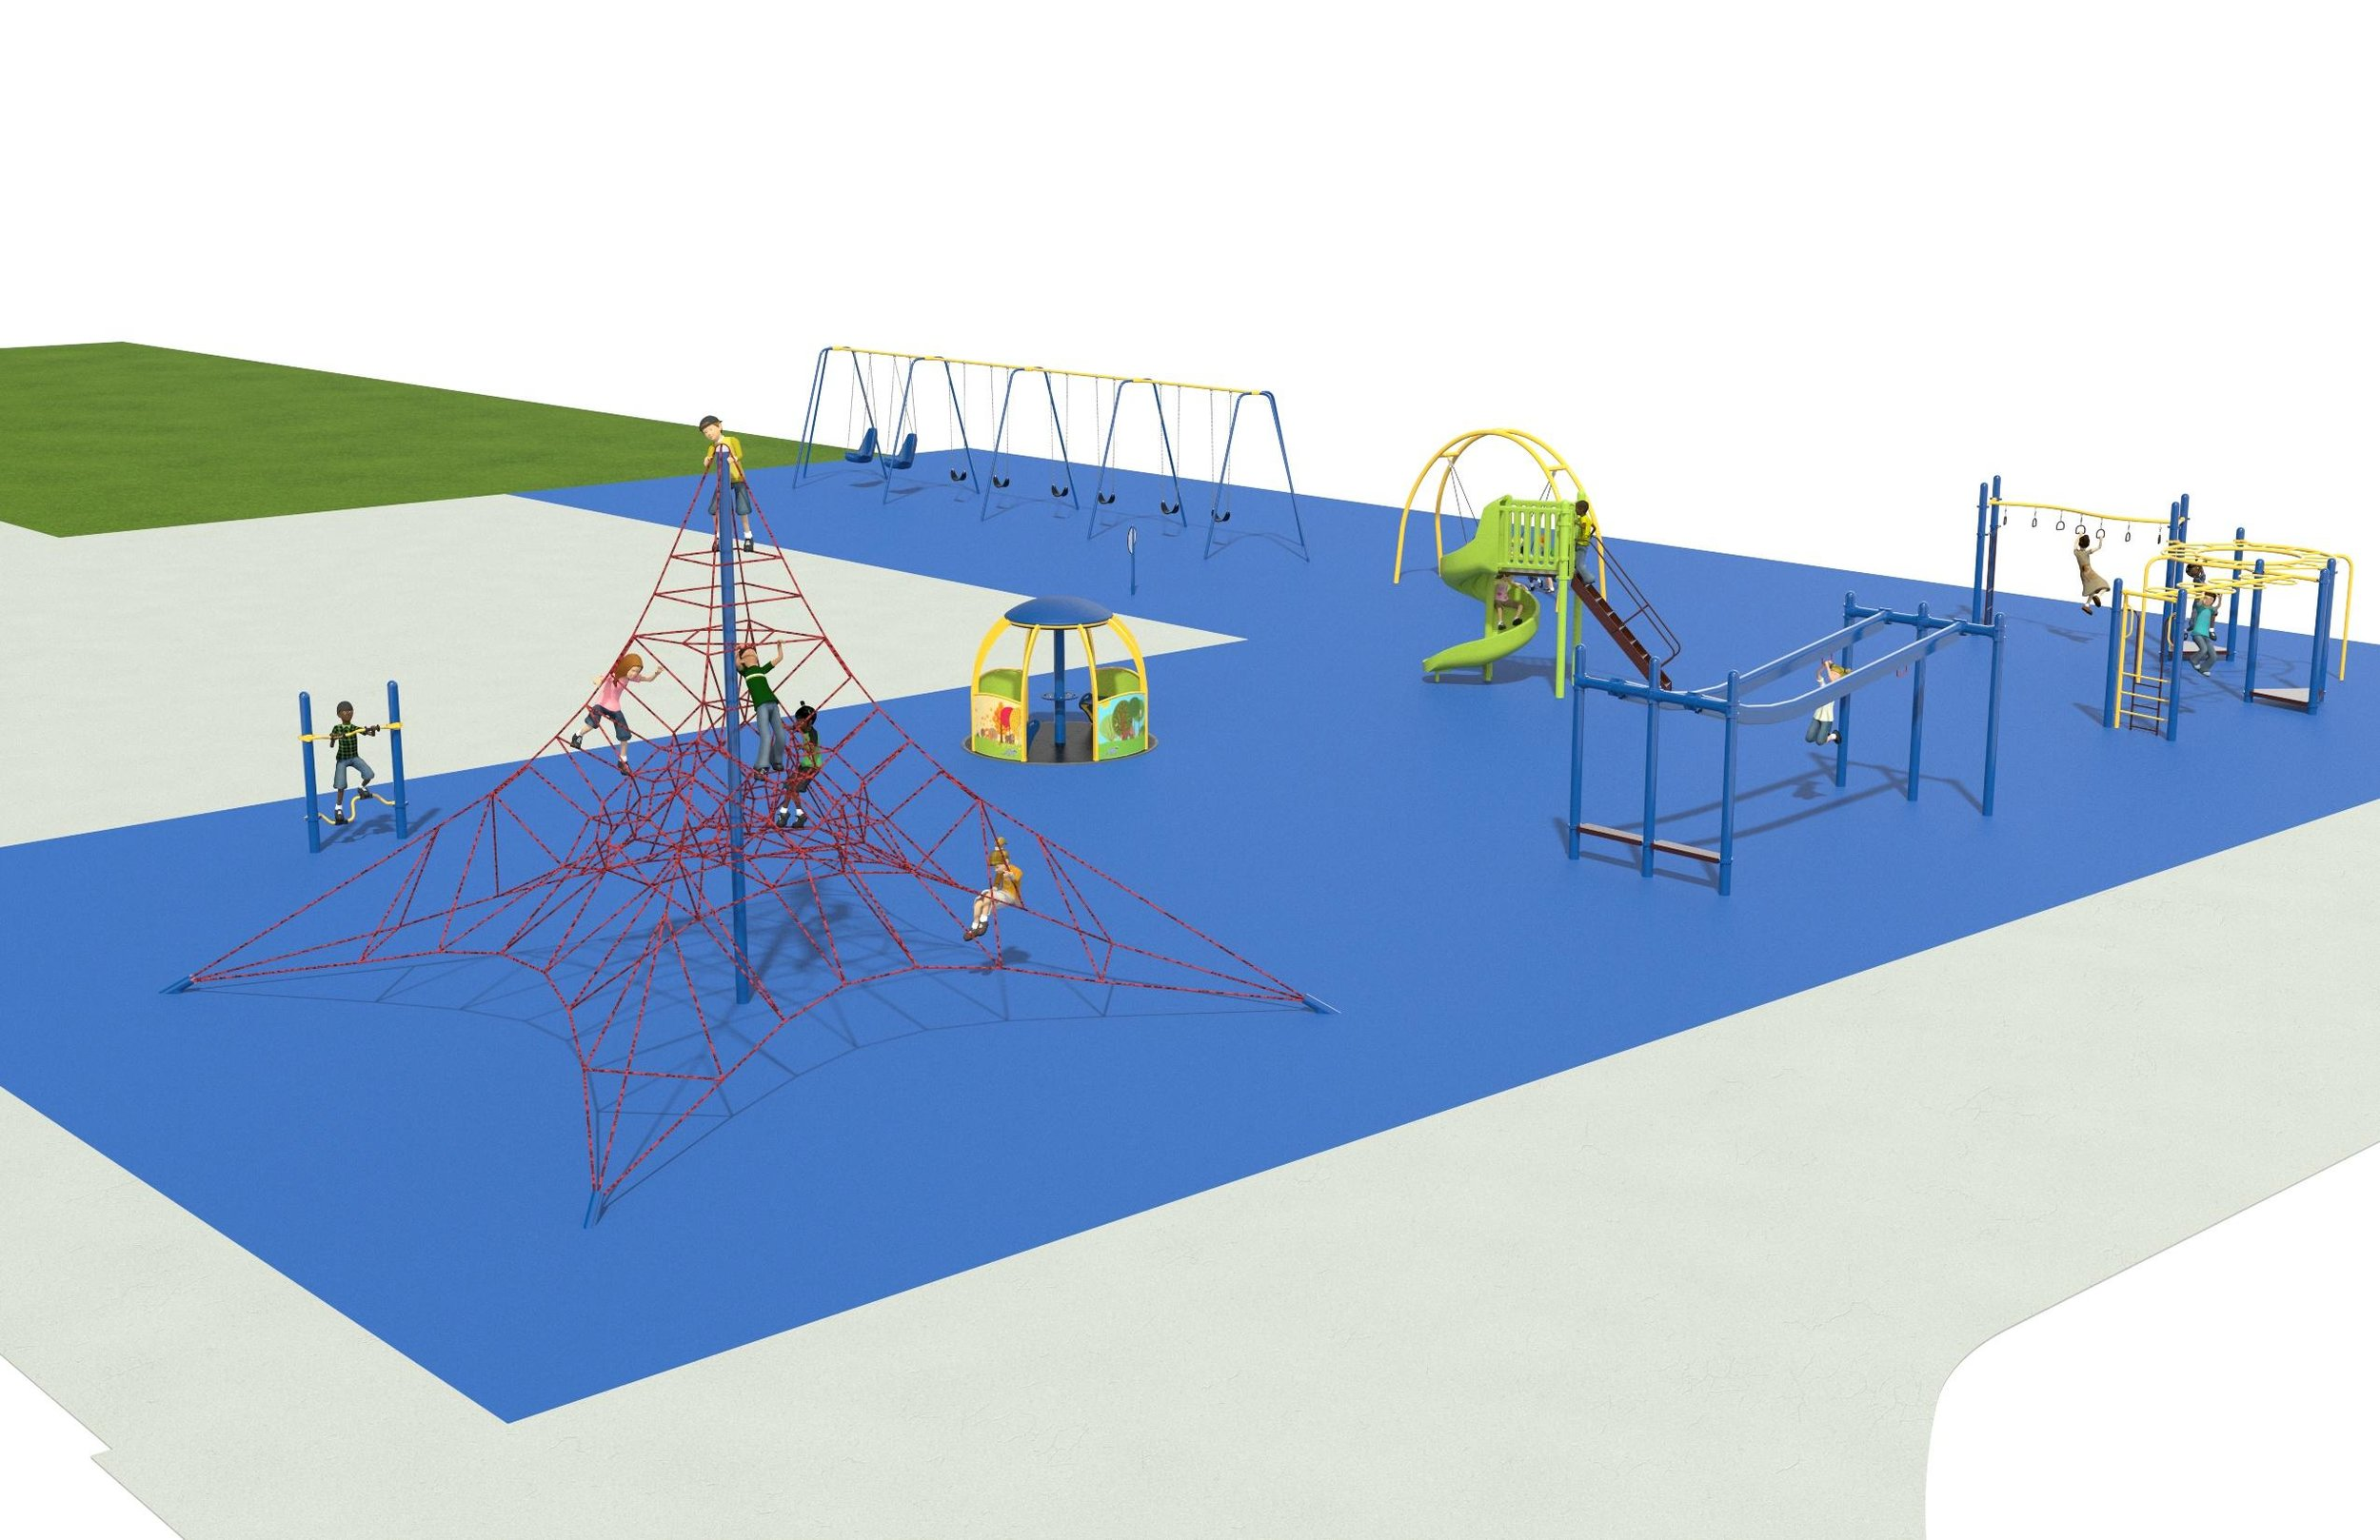 The playground will have a poured-in-place surface that is designed to cushion falls and allow access for students who use wheelchairs or have limited mobility.